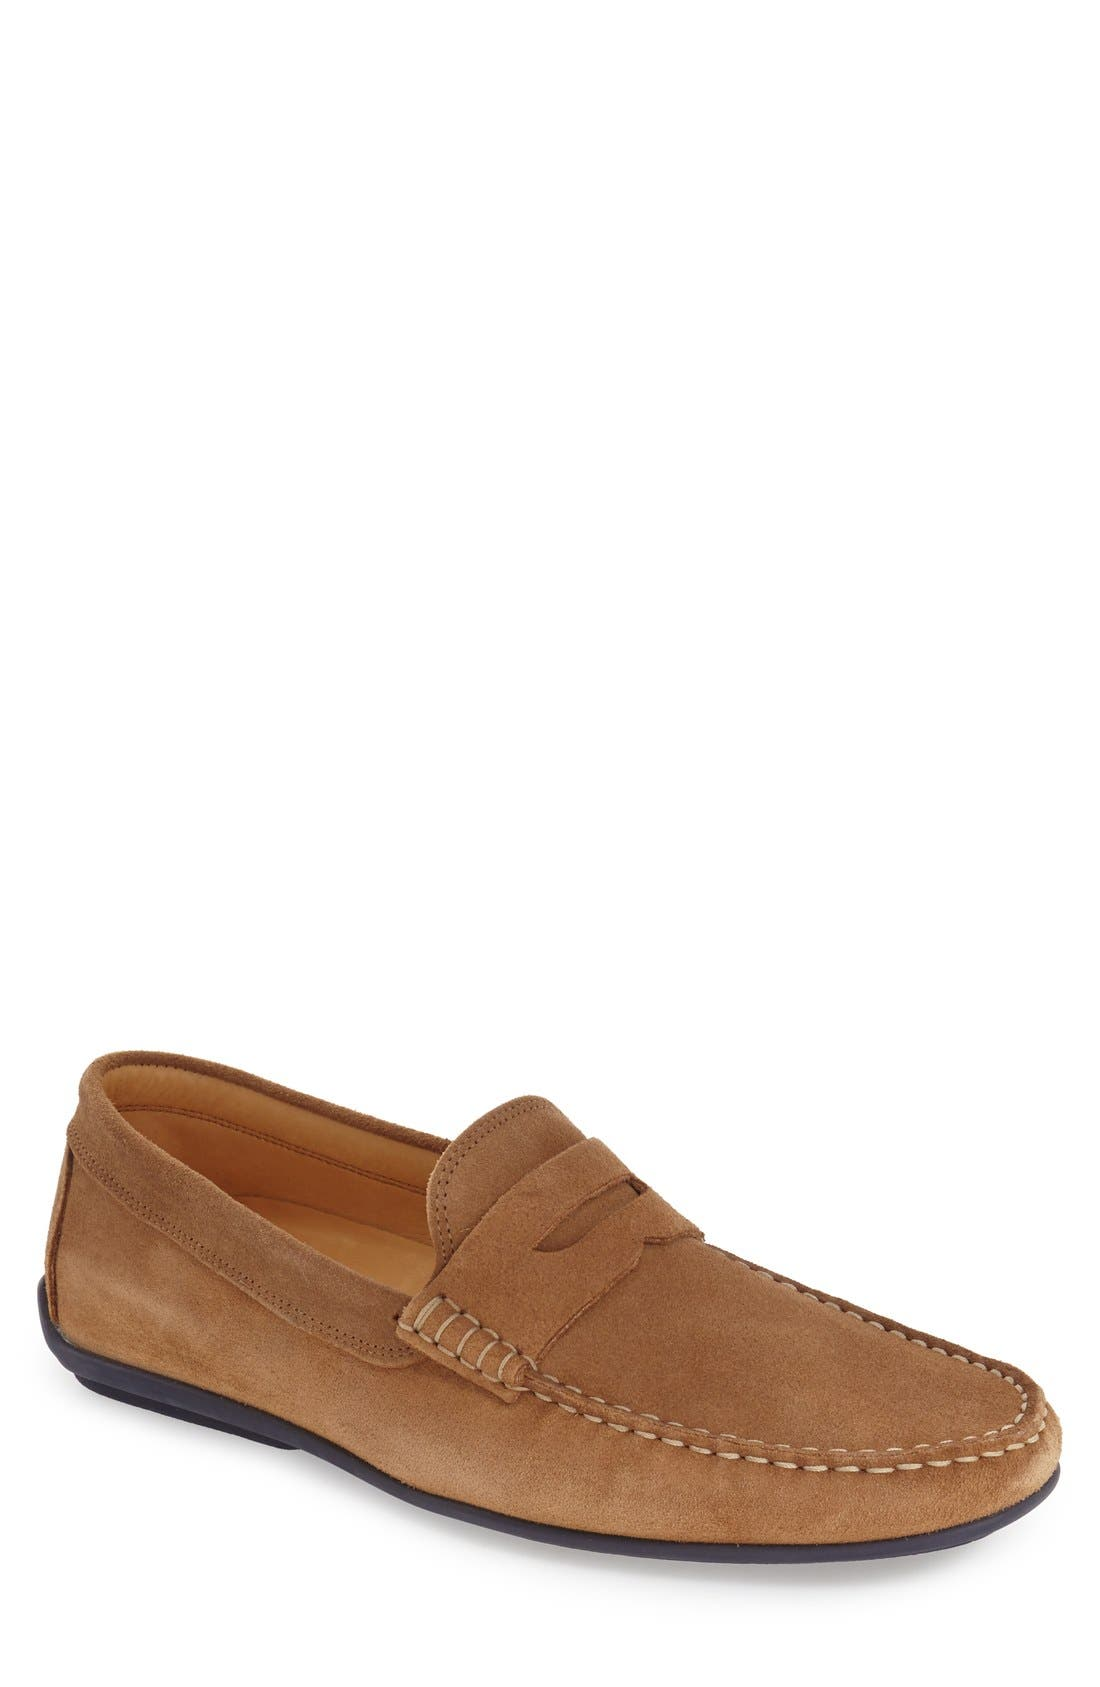 Alternate Image 1 Selected - Austen Heller 'Parkers' Penny Loafer (Men)